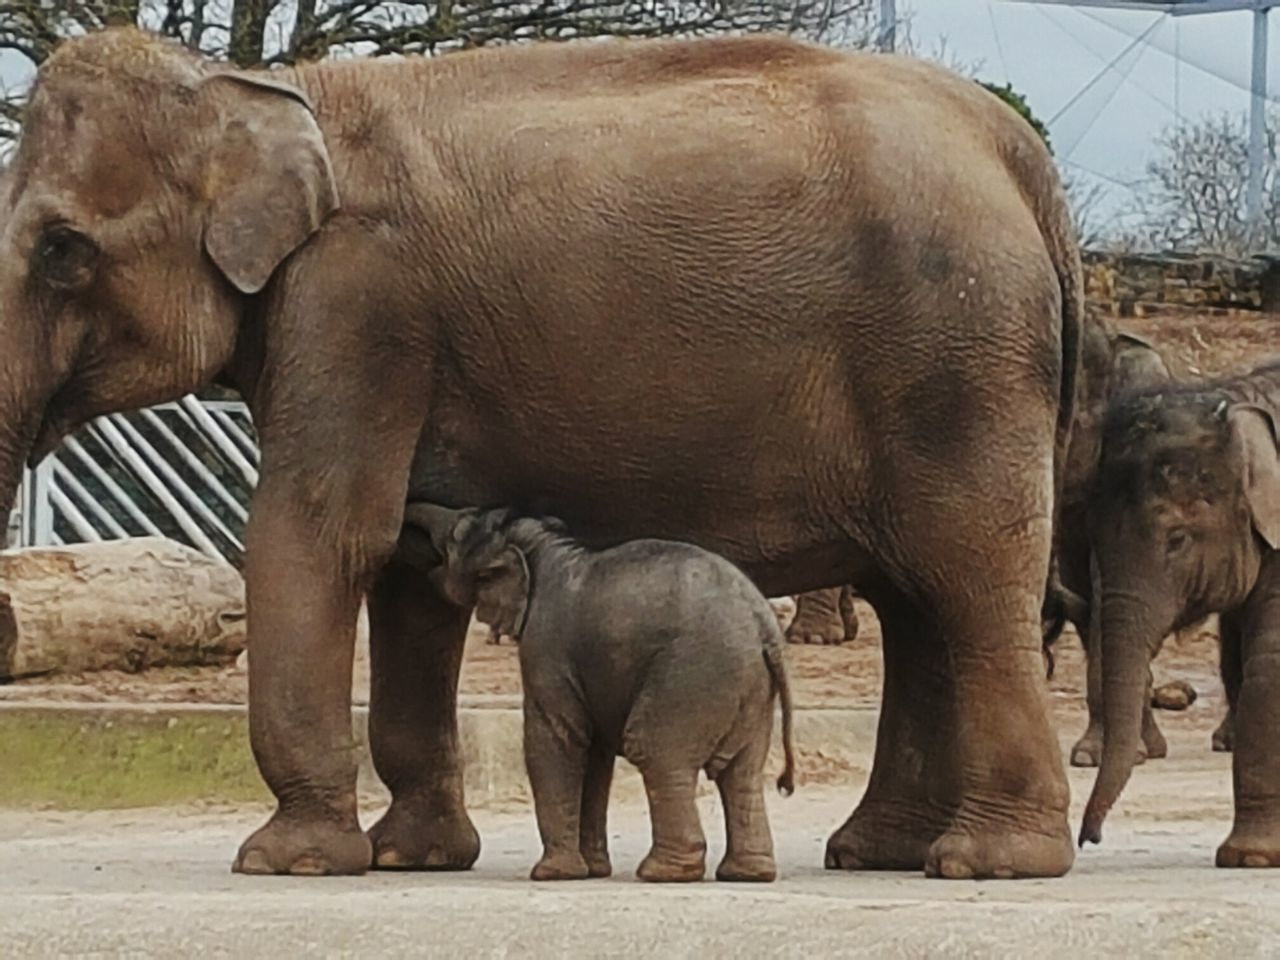 elephant, animal themes, mammal, animals in the wild, young animal, day, no people, togetherness, outdoors, animal wildlife, elephant calf, large group of animals, animal trunk, nature